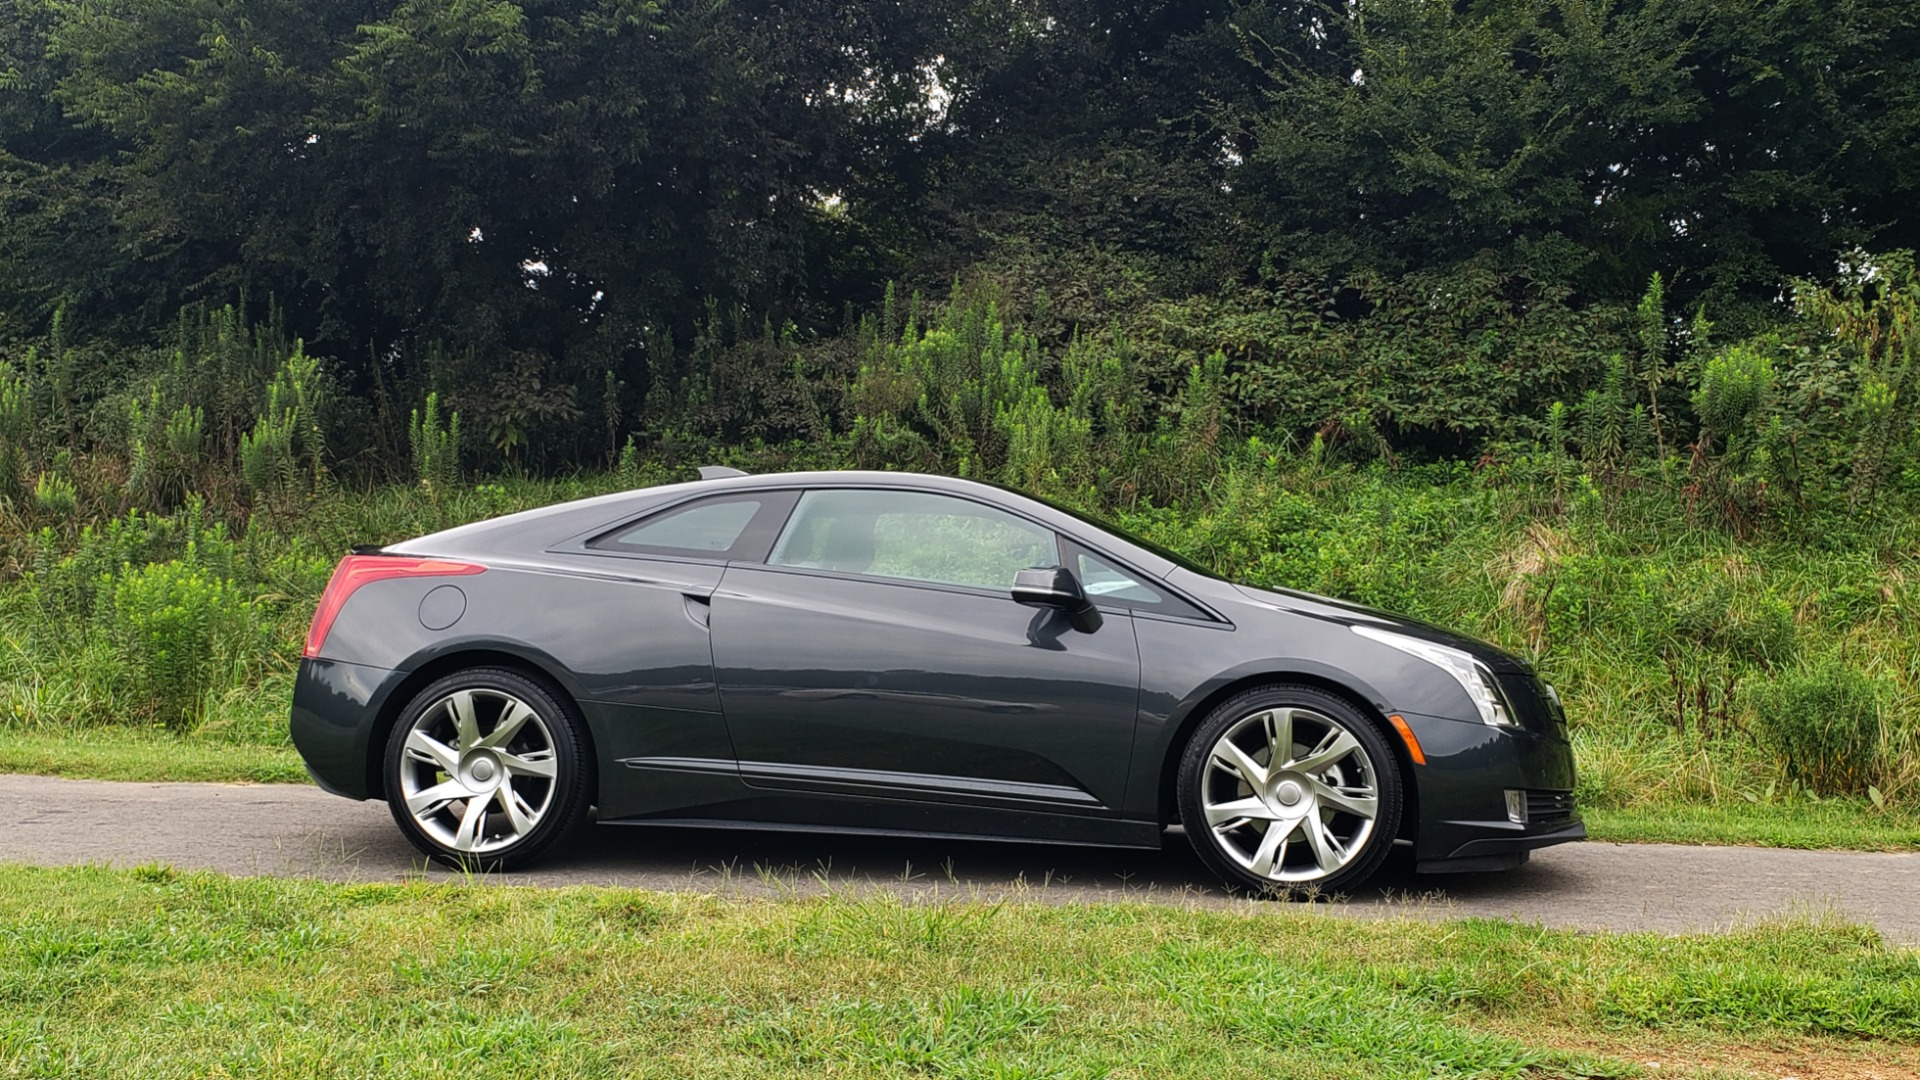 Used 2014 Cadillac ELR 2DR COUPE / HYBRID / NAV / BOSE / HEATED SEATS / REARVIEW for sale $34,000 at Formula Imports in Charlotte NC 28227 7